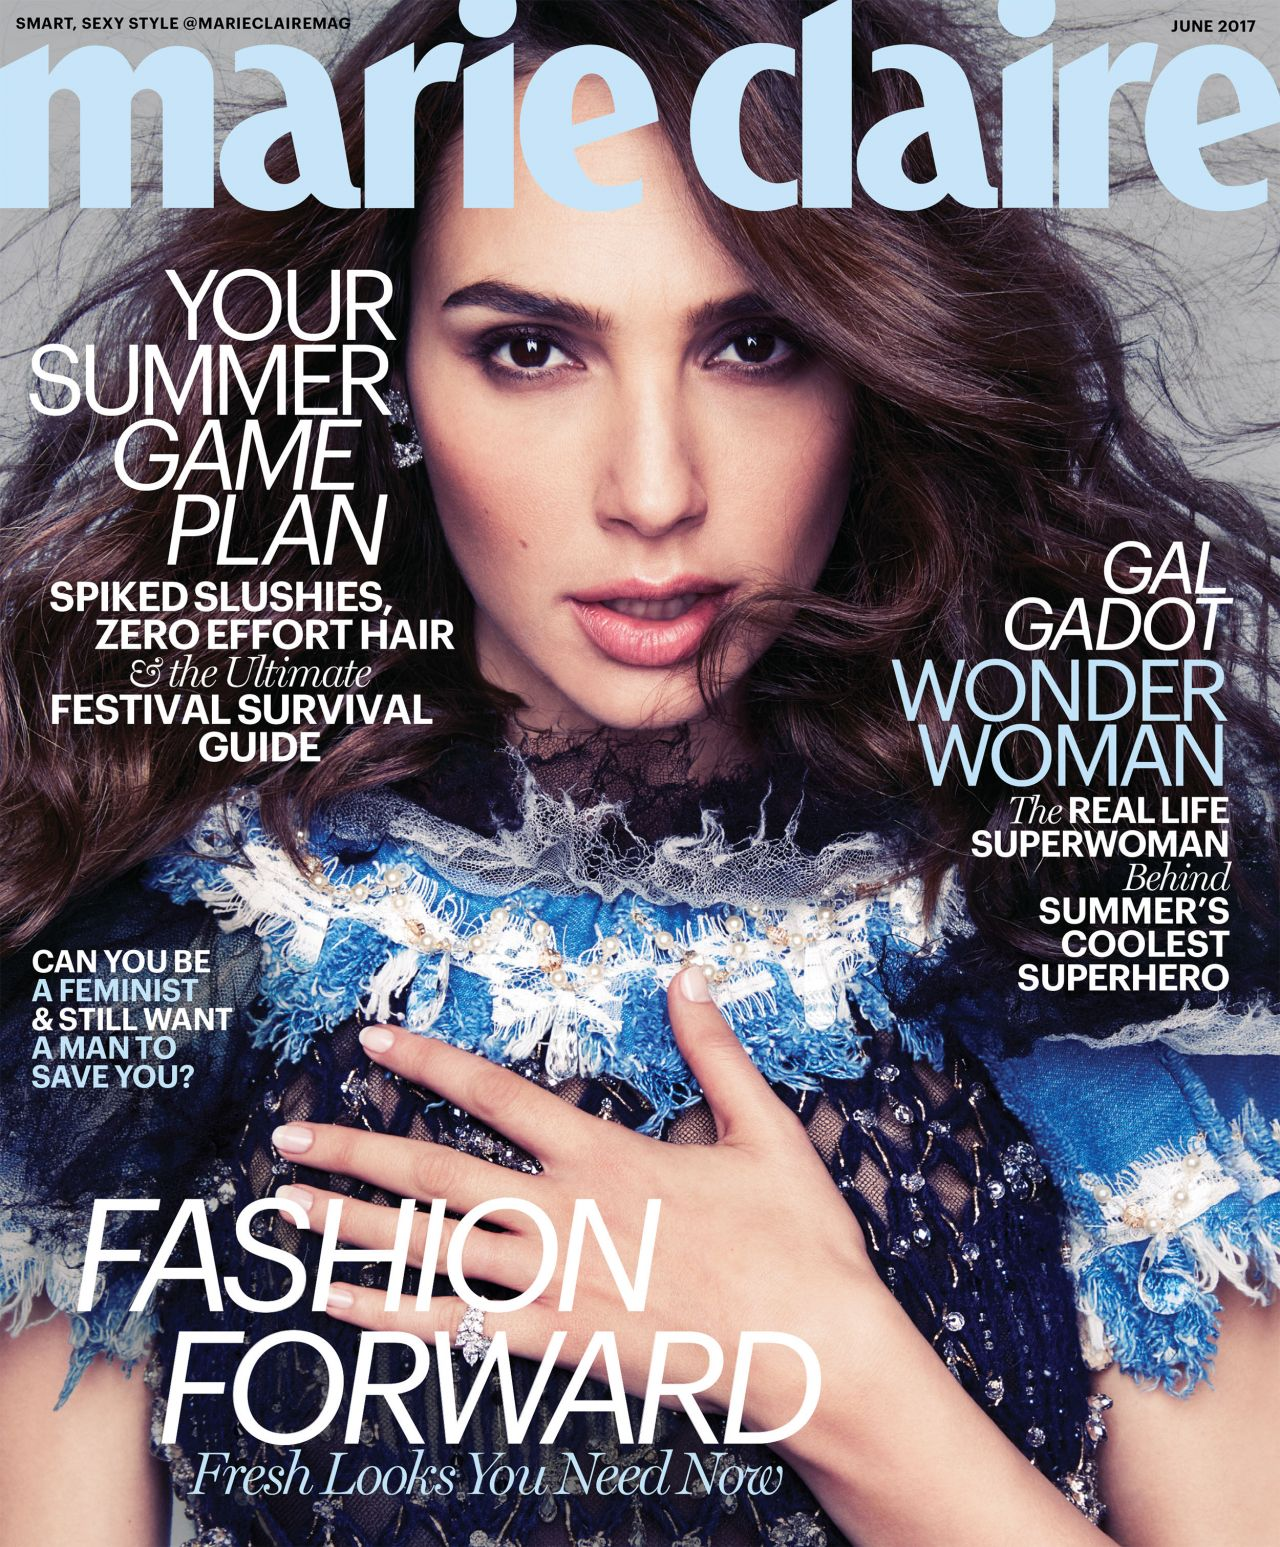 http://celebmafia.com/wp-content/uploads/2017/05/gal-gadot-marie-claire-magazine-us-june-2017-cover-and-photo-2.jpg